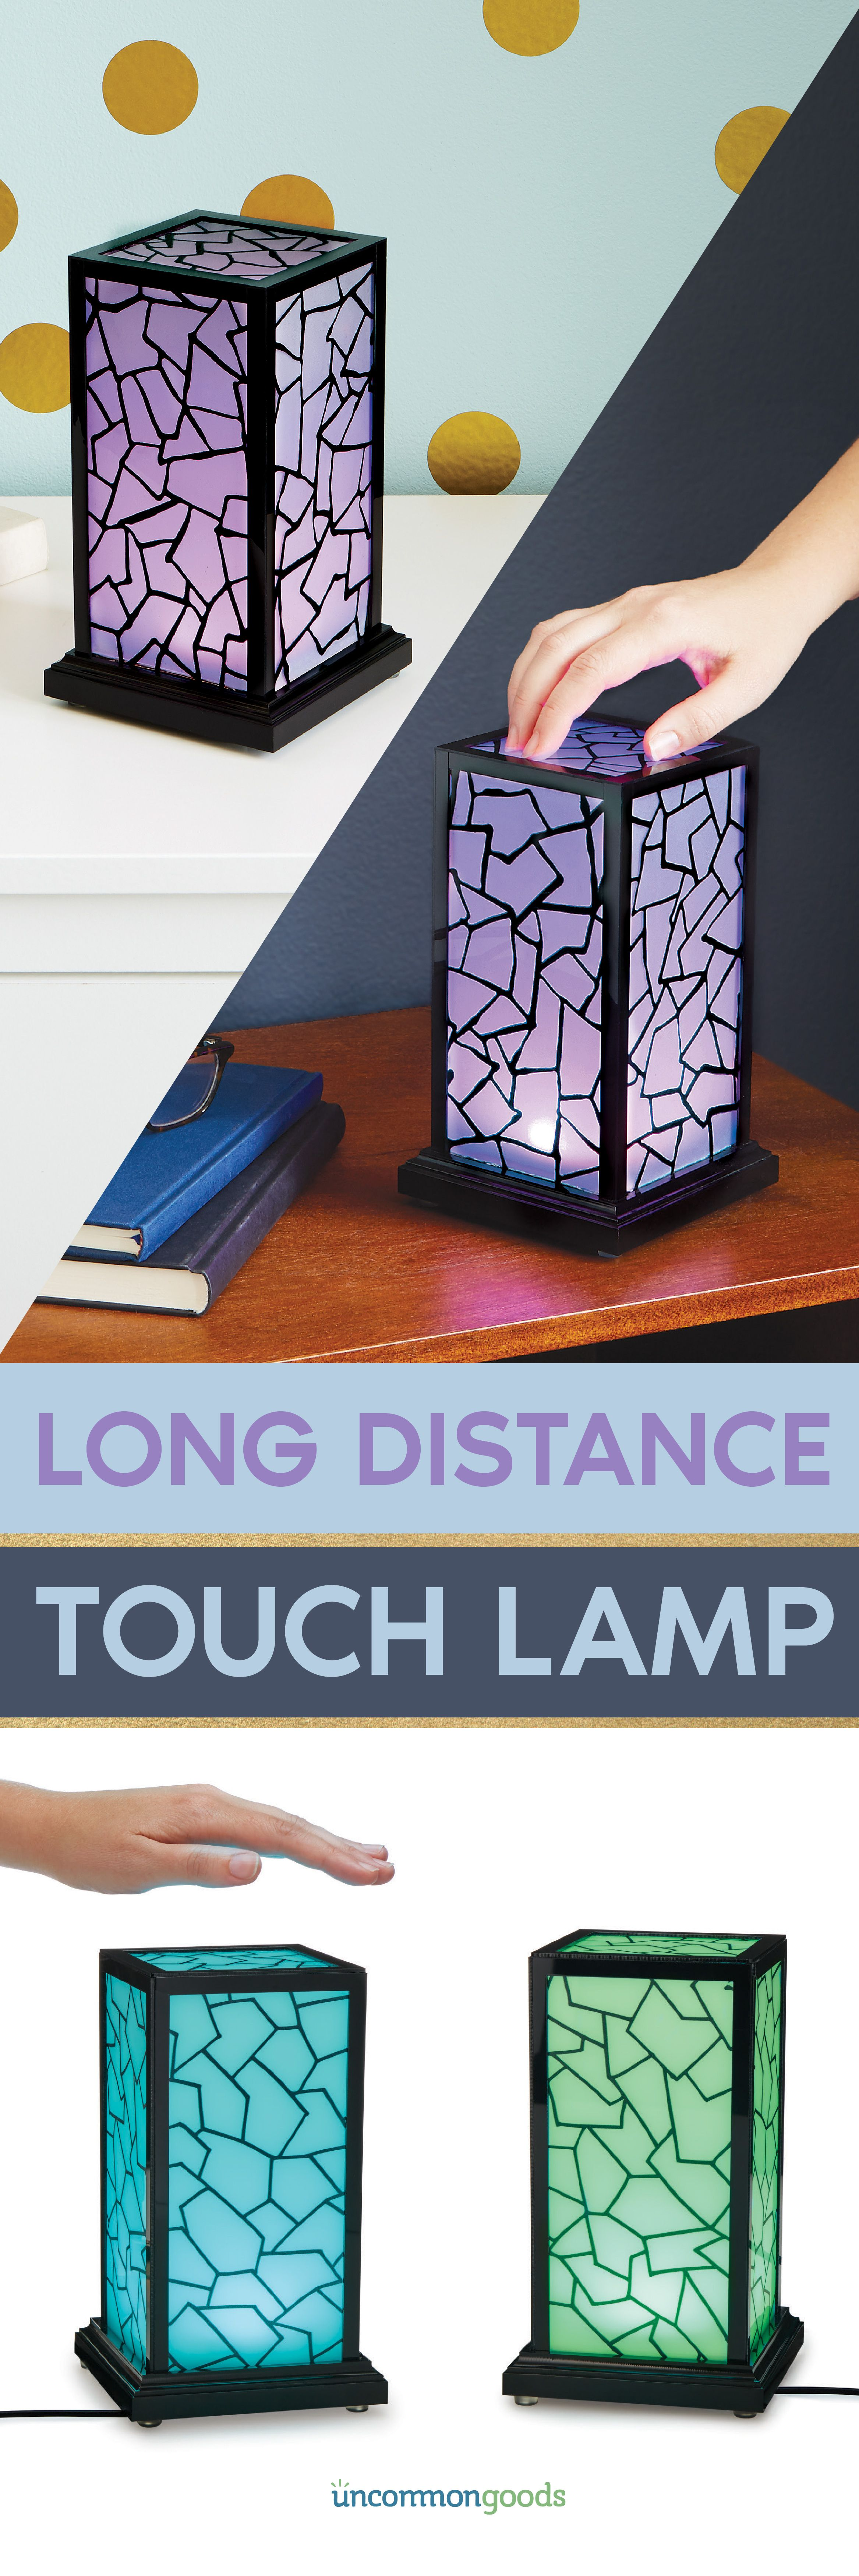 170 For Set Light Up A Loved One S Life Across Town Or Across The Country With These In Sync Lamps Boyfriend Gifts Diy Gifts Friendship Lamps